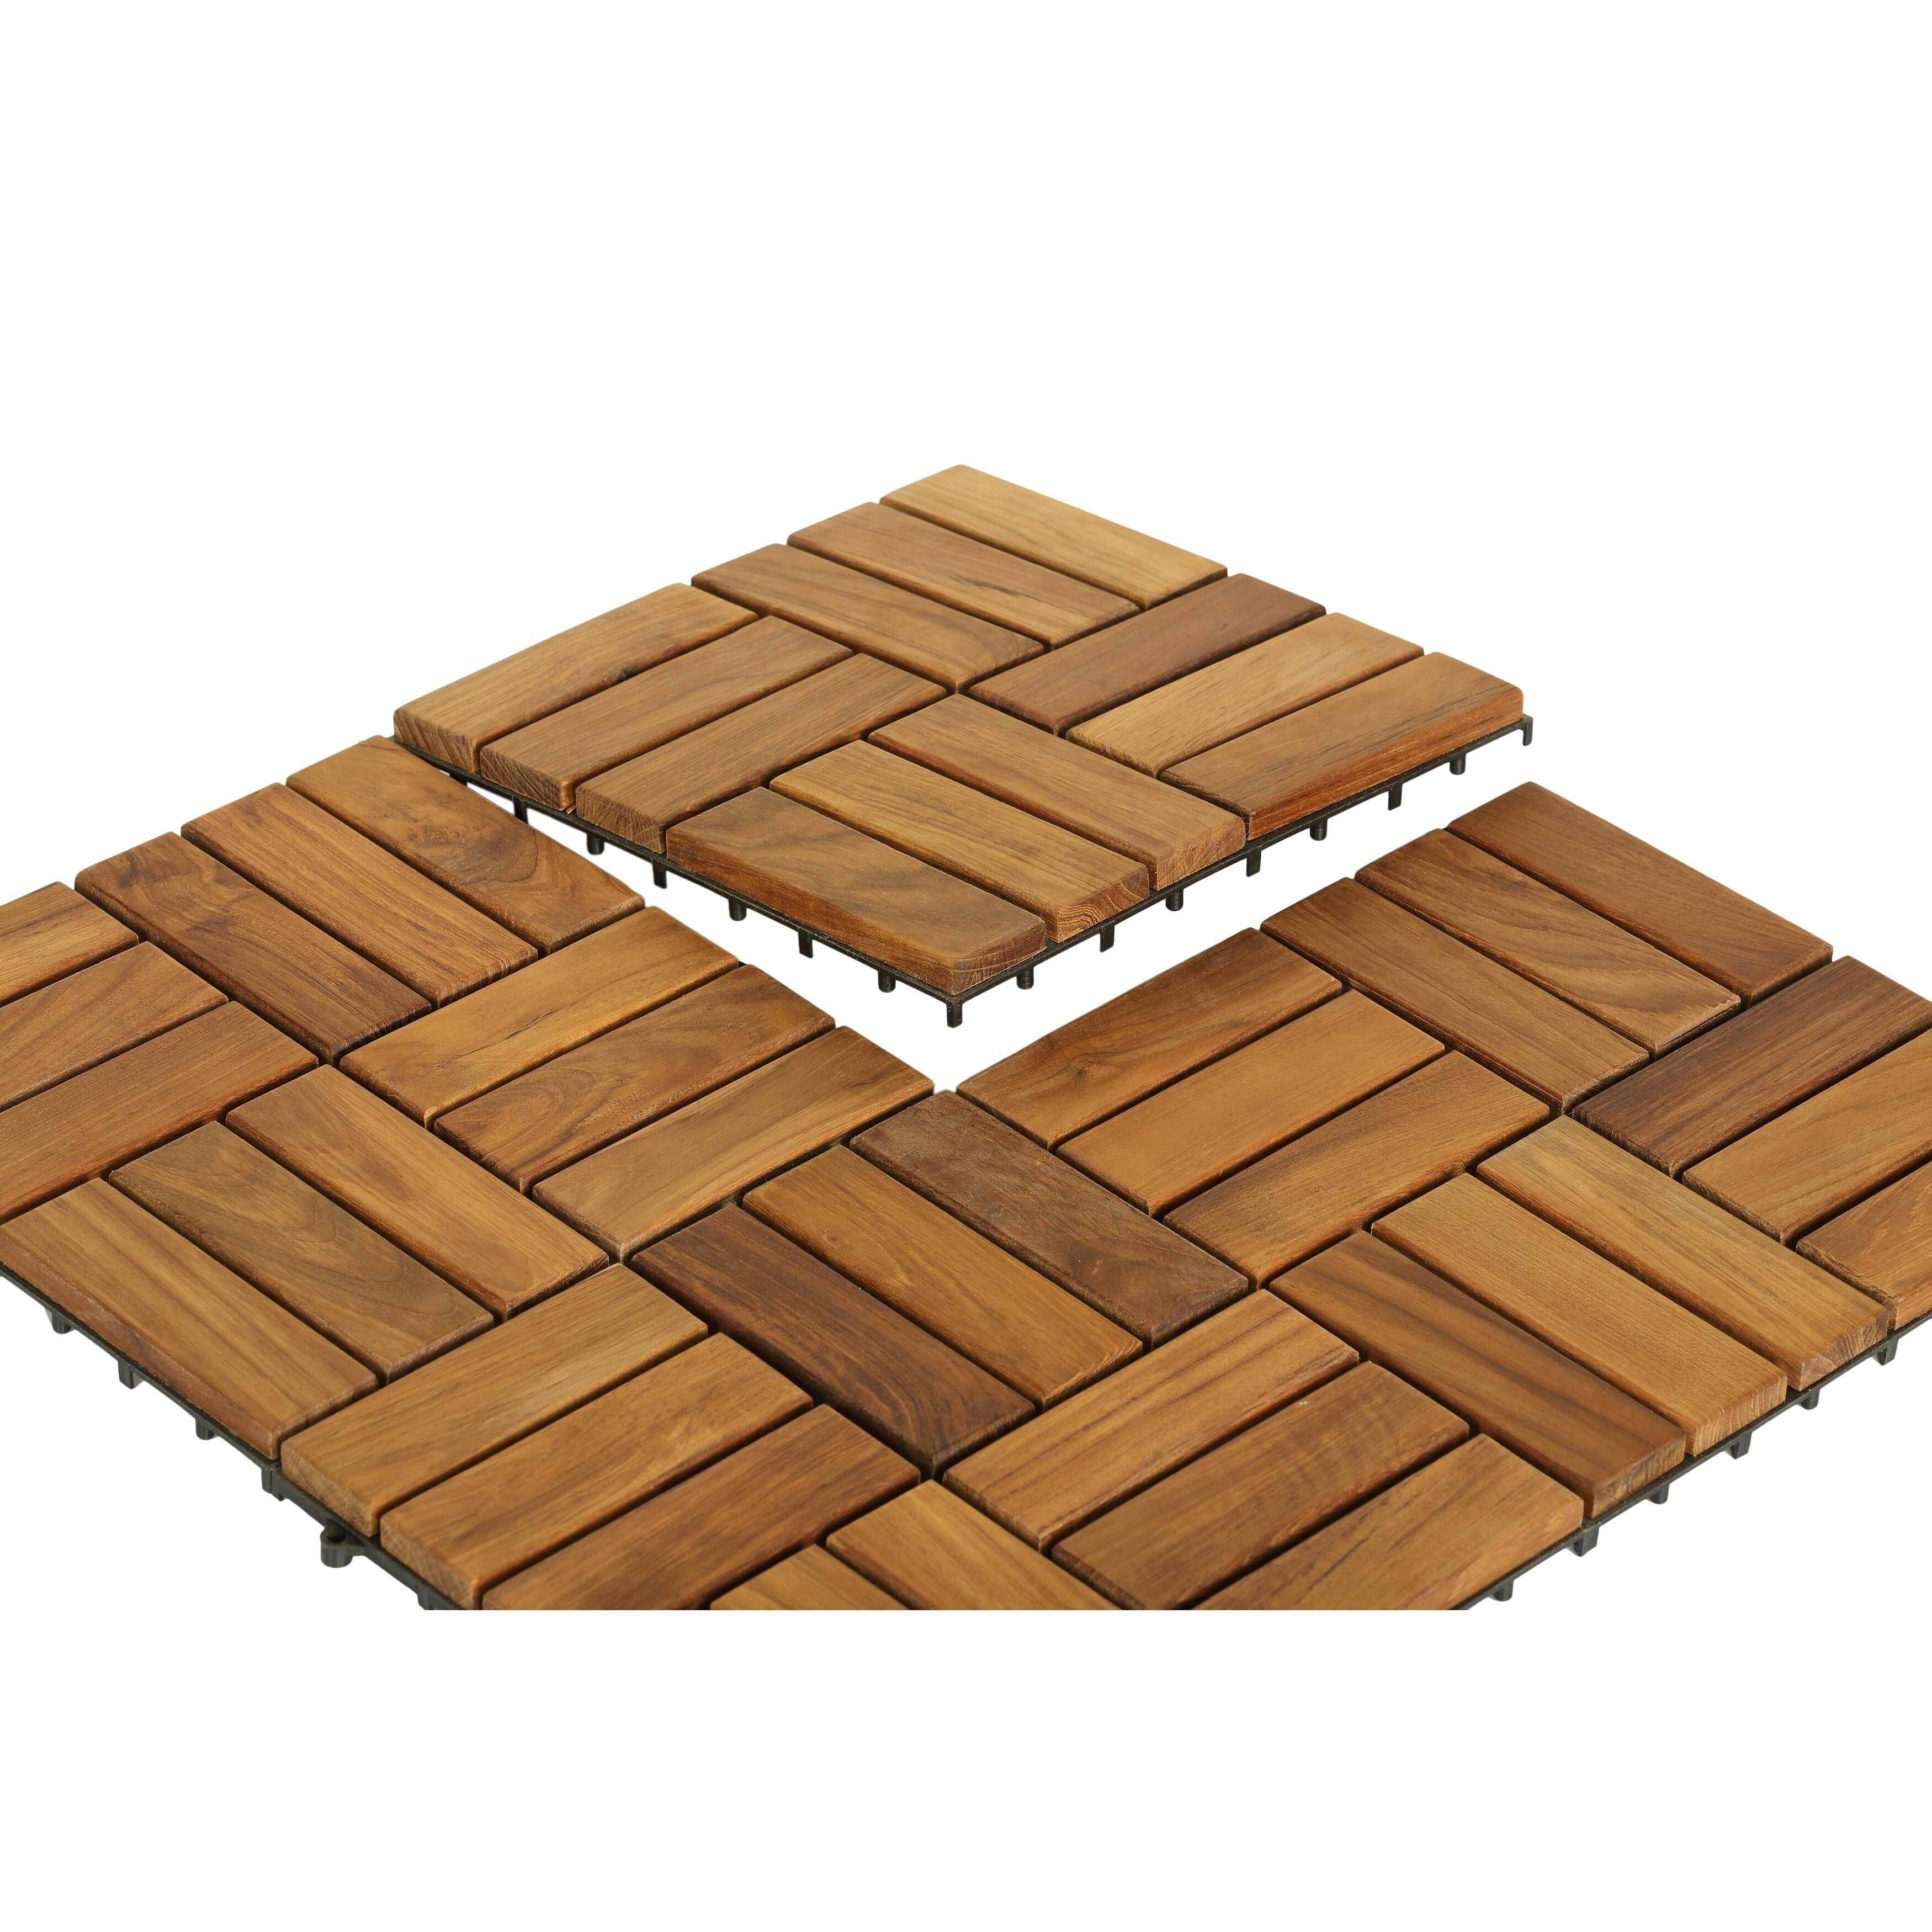 What Wood Goes With Teak